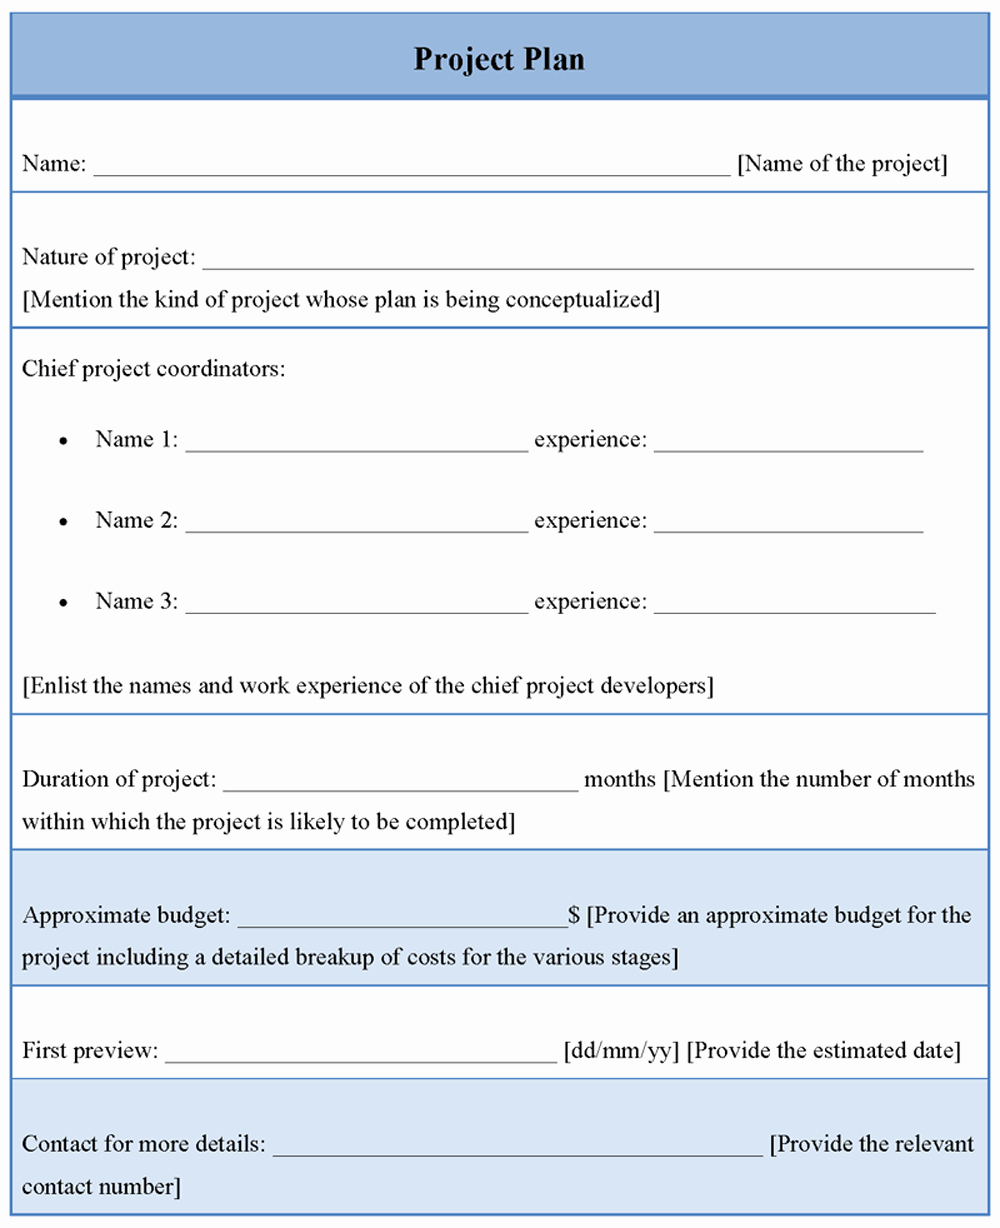 Project Plan Outline Template Elegant Project Planning Template